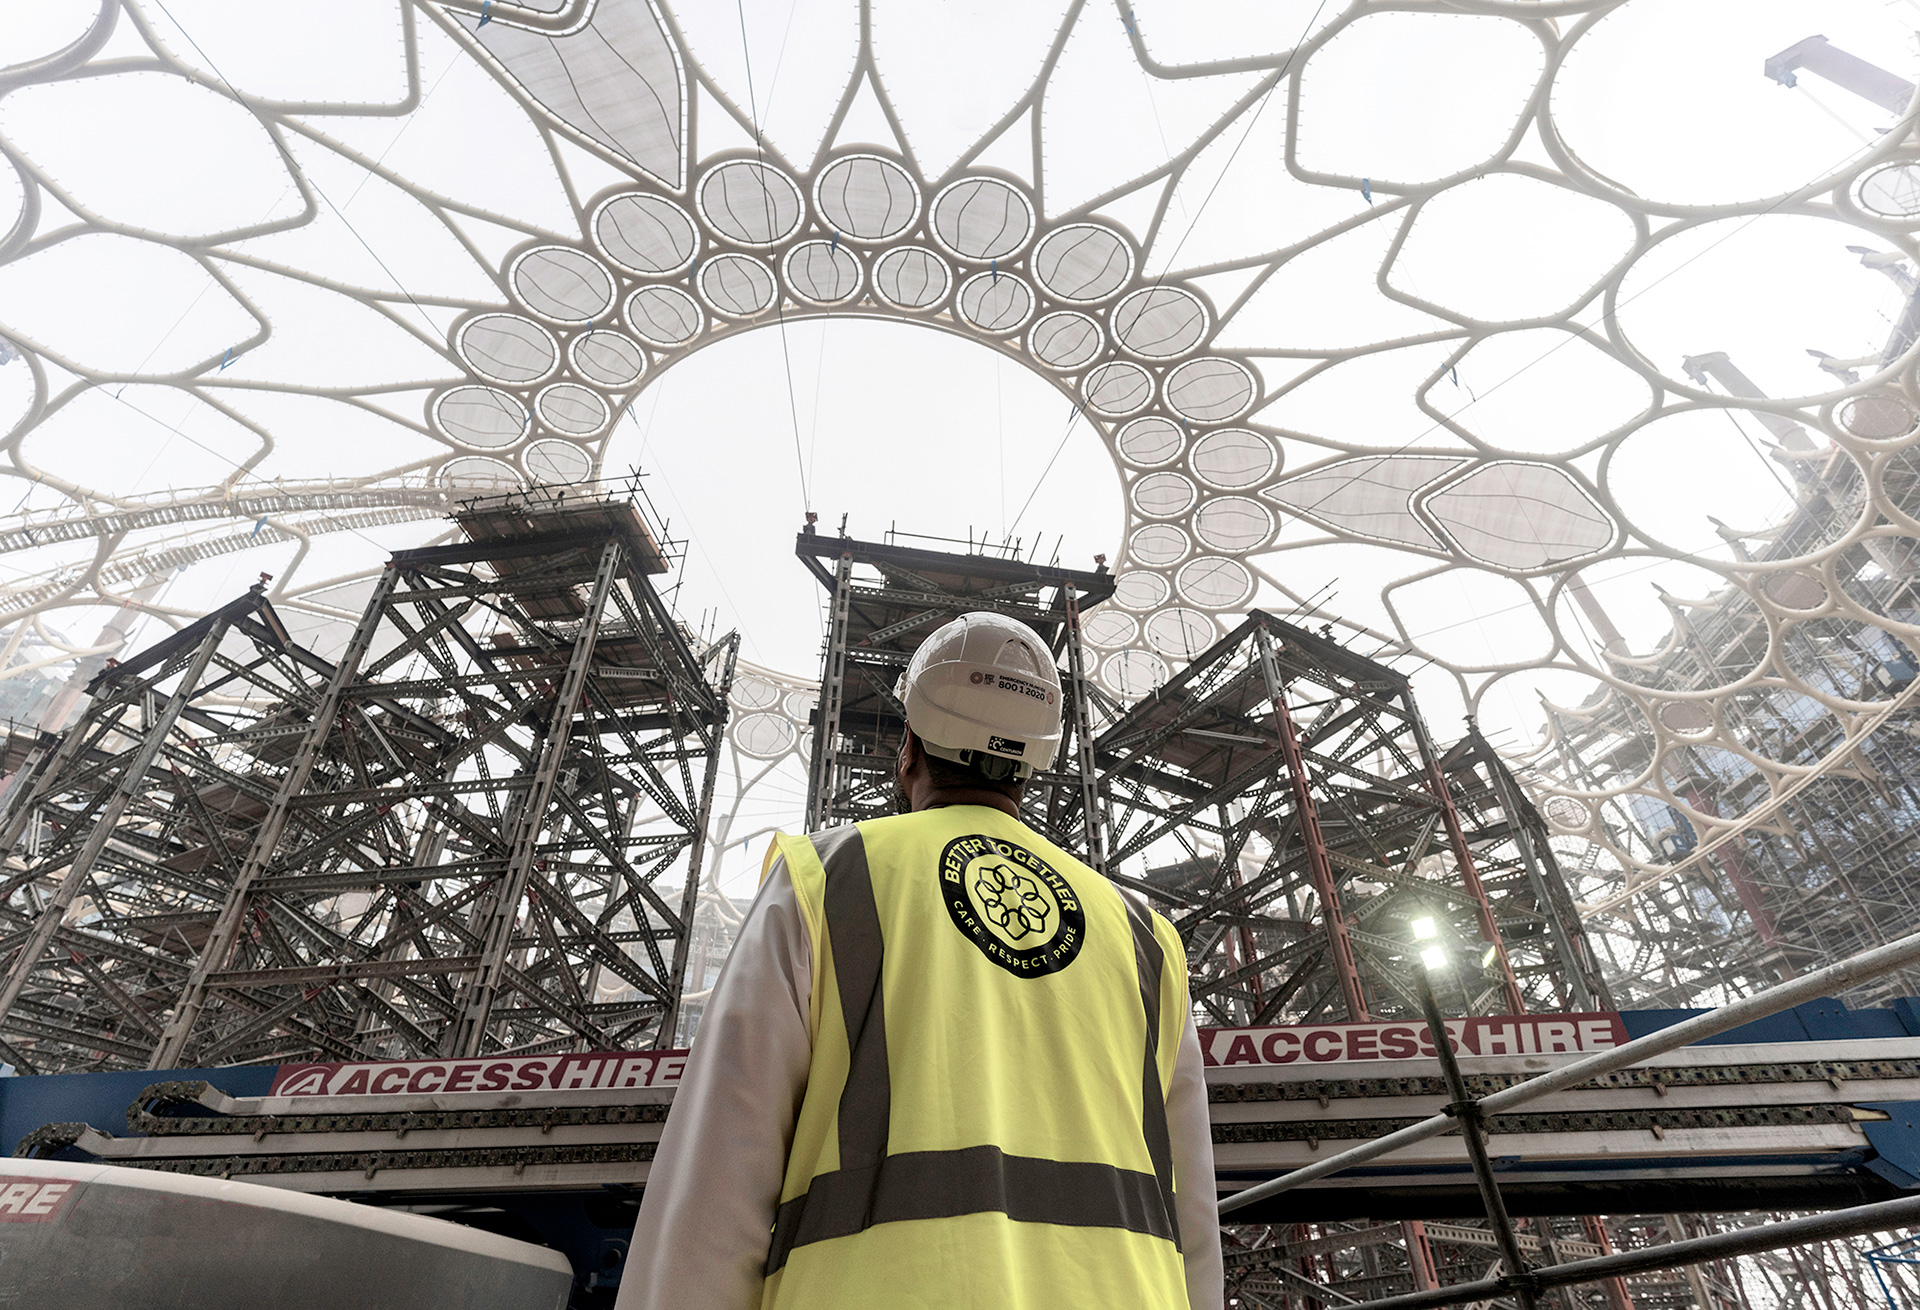 Dome being held in place | Al Wasl Dome|Expo 2020| Dubai| STIRworld